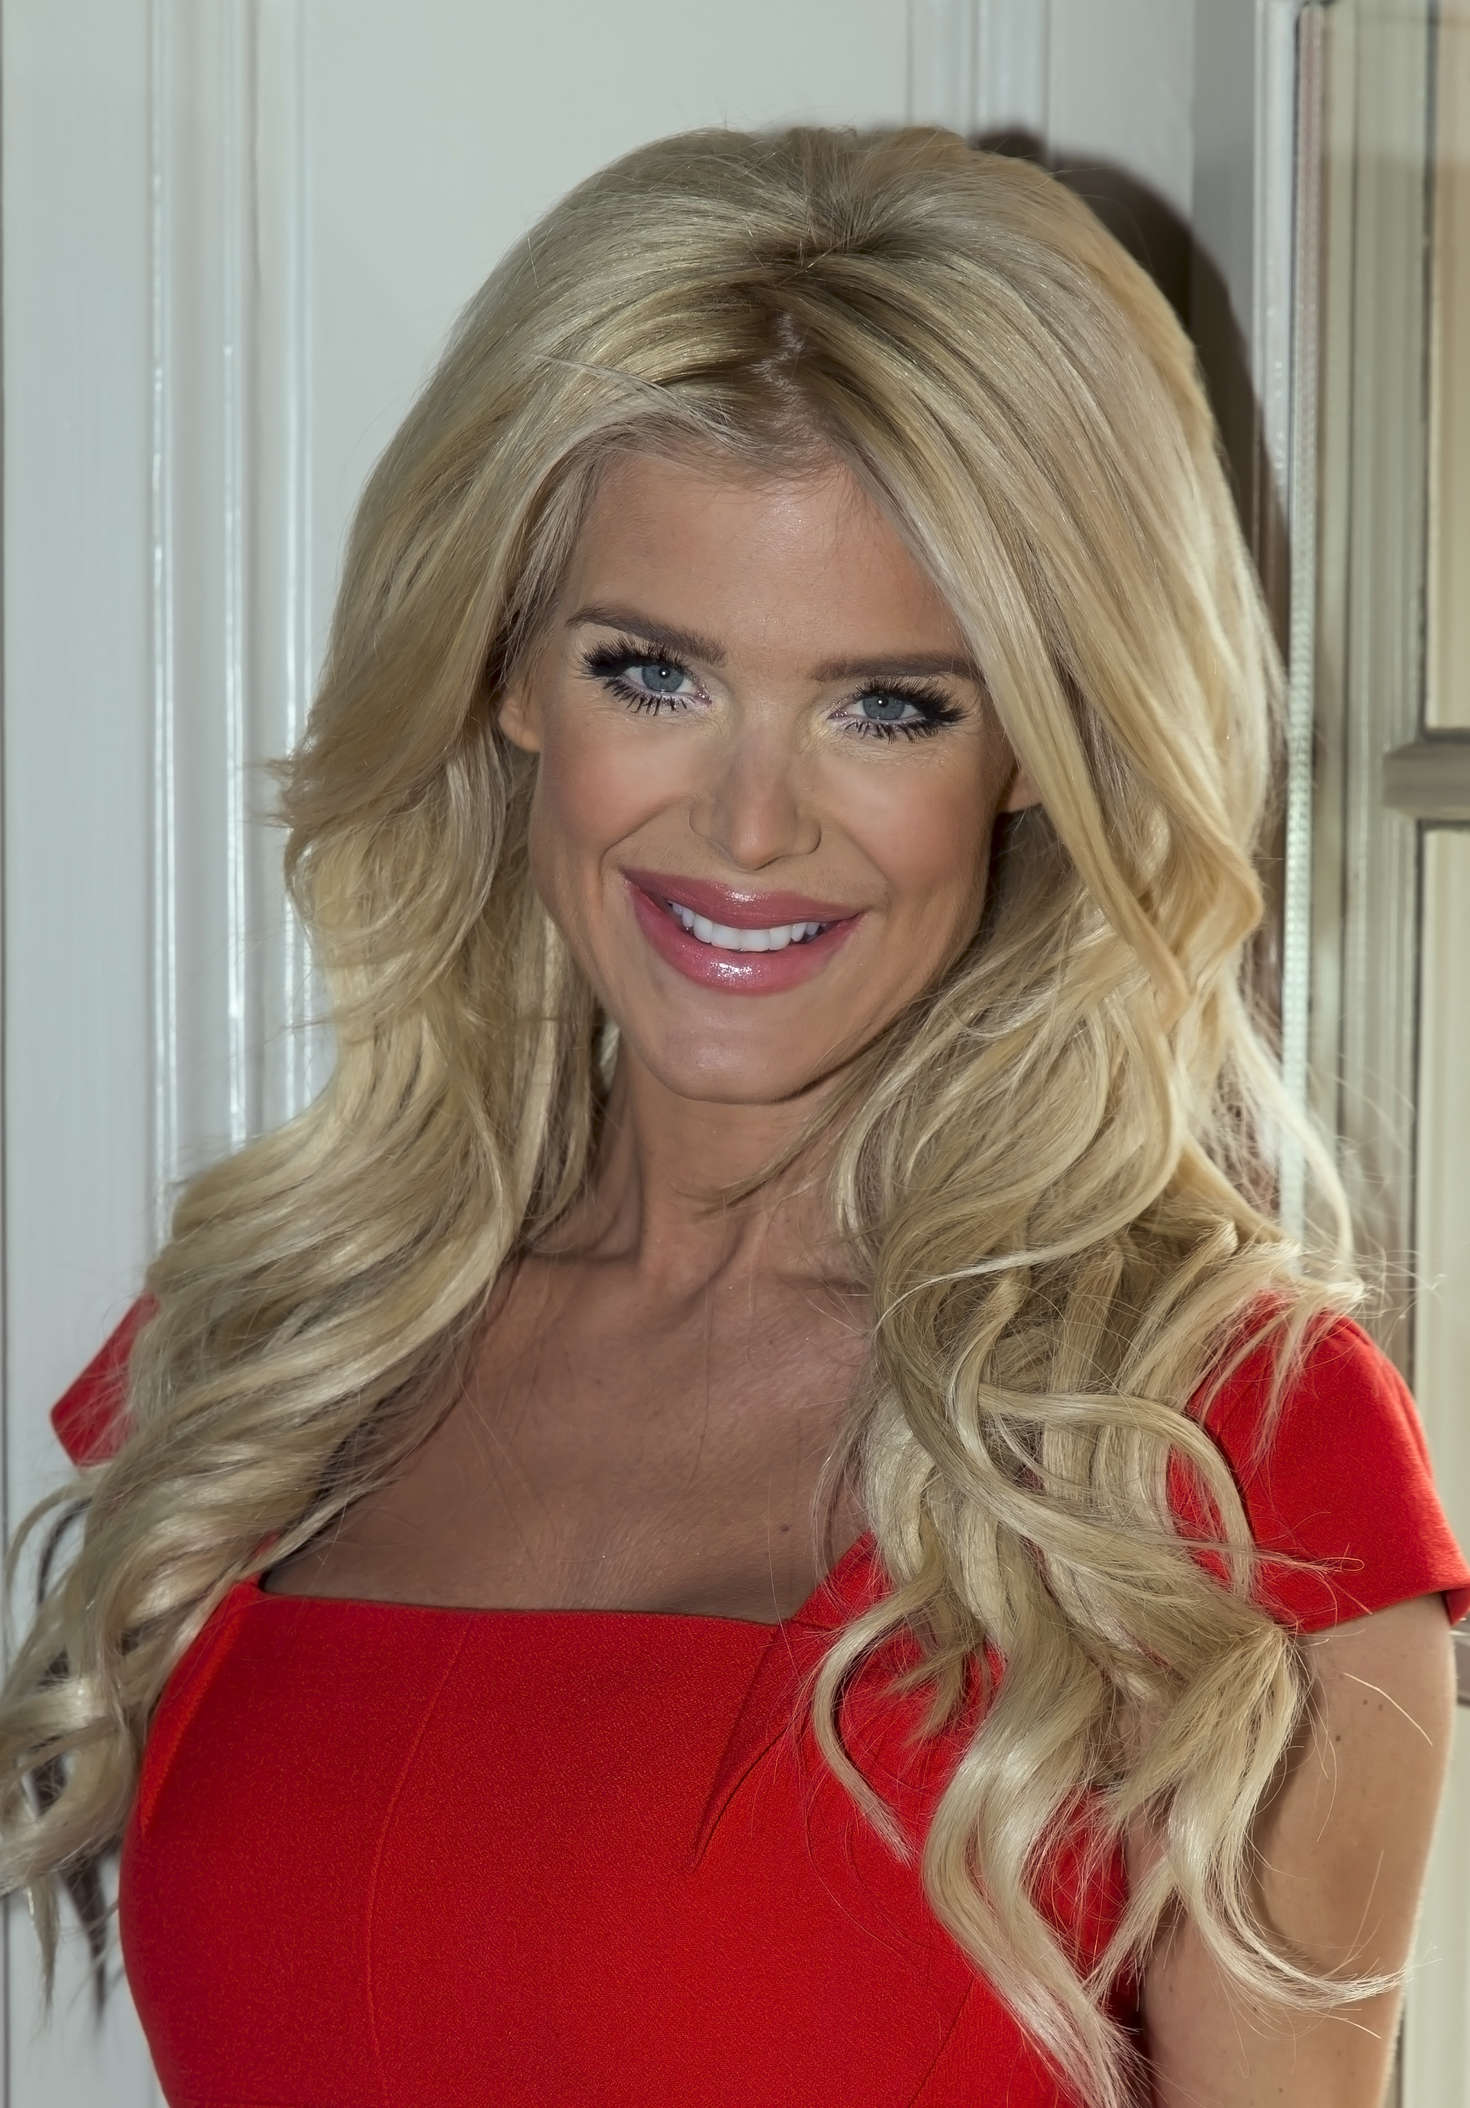 Victoria Silvstedt Reality Stars Stockholm Photocall in Sweden